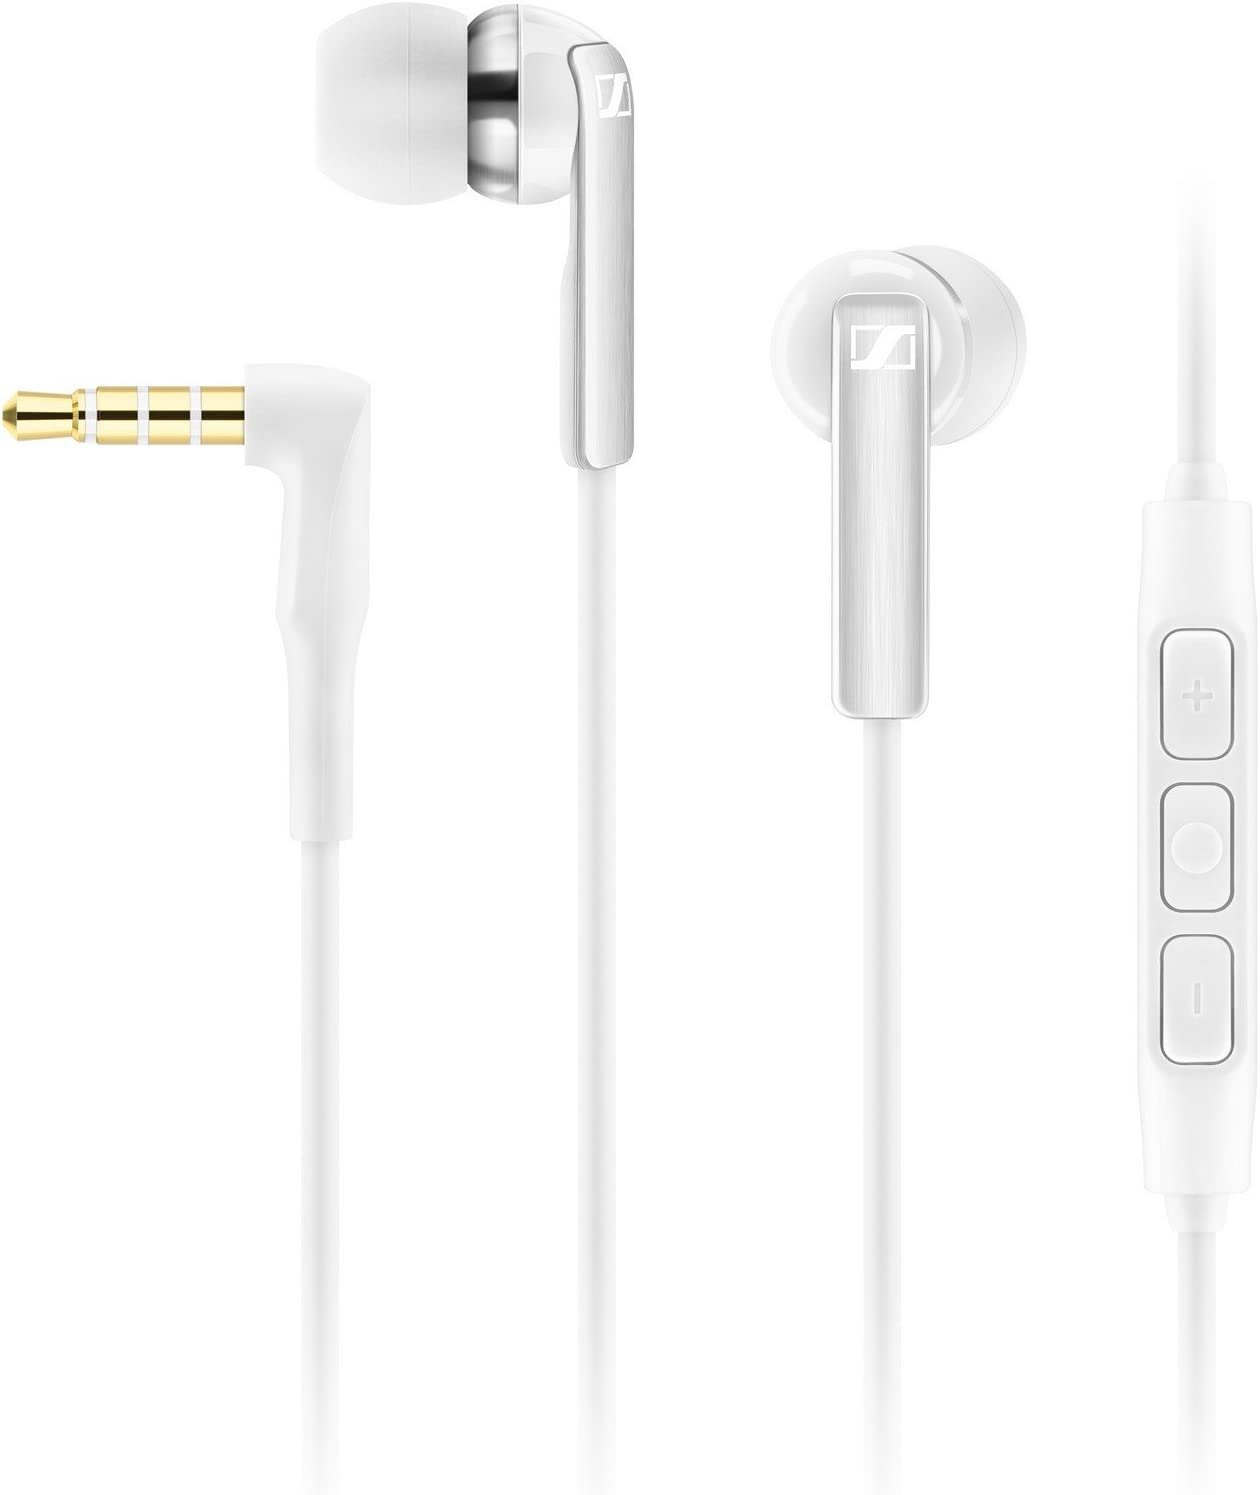 Sennheiser CX 2.00G White In-Ear Canal Headset (Discontinued by Manufacturer)